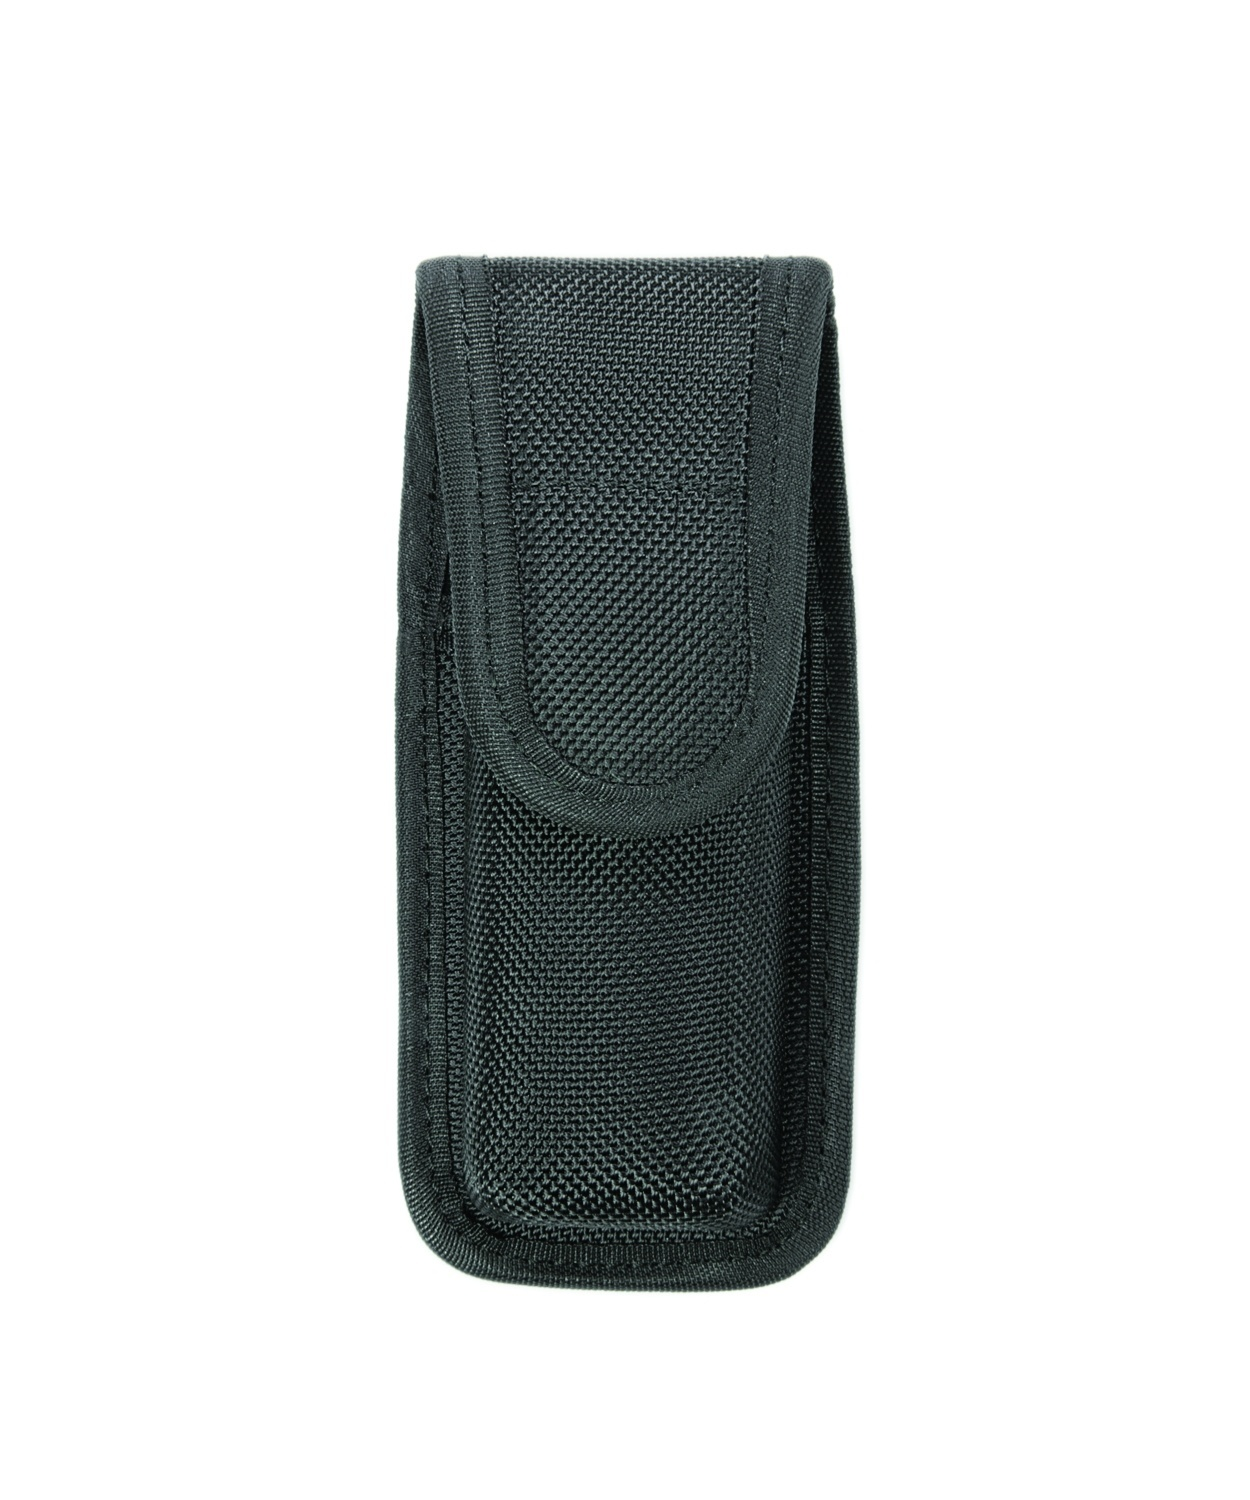 Single Magazine or Knife Pouch - Medium-Hero's Pride